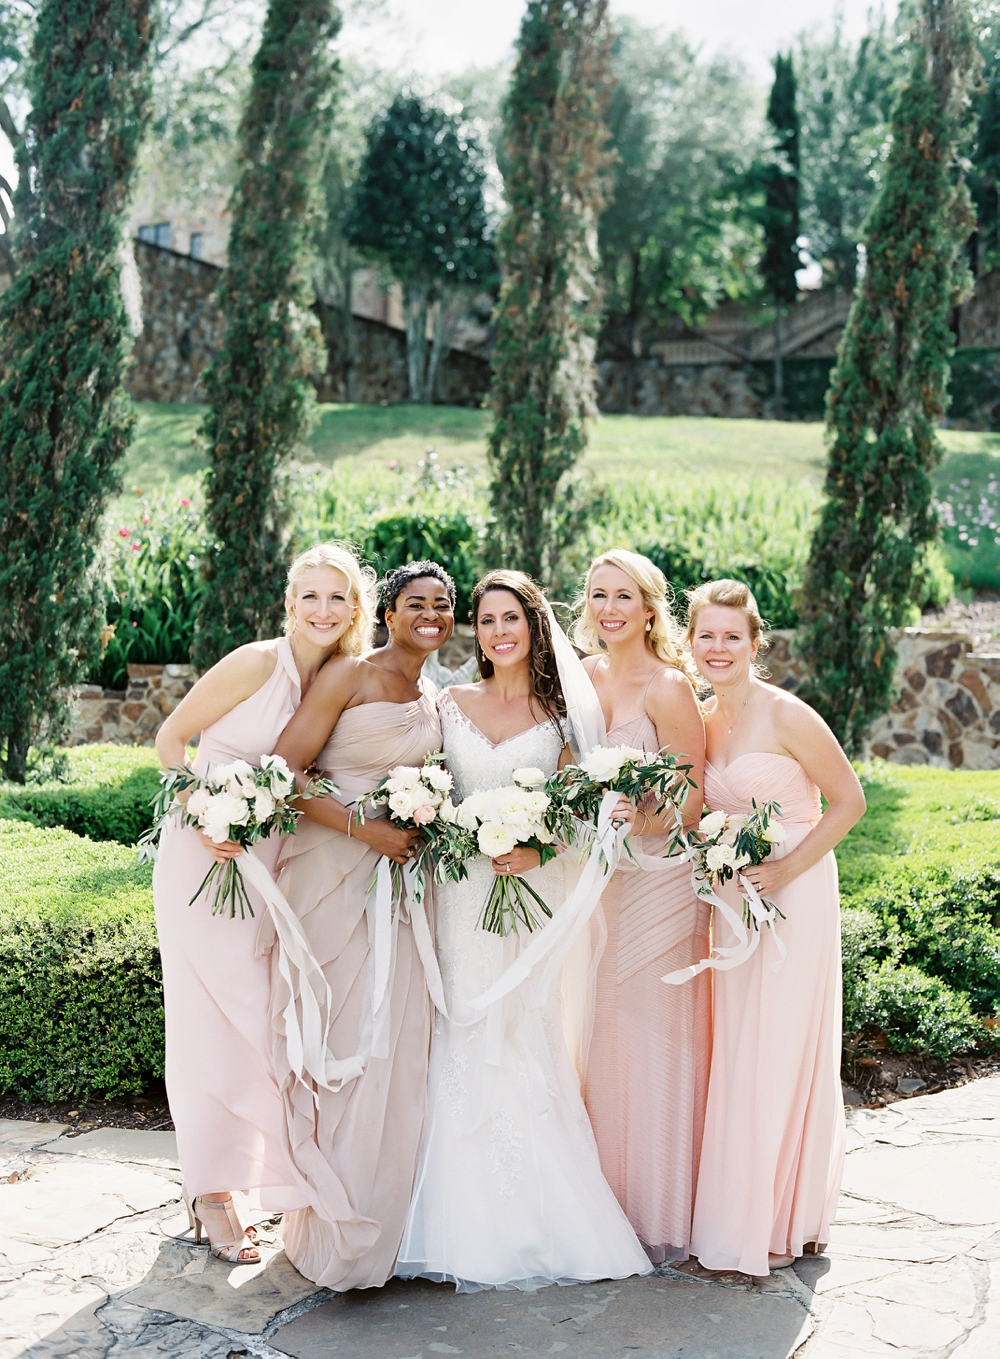 Vicki Grafton Photography - Fine Art Film Wedding Photographer - Bella Collina Wedding_0044.jpg